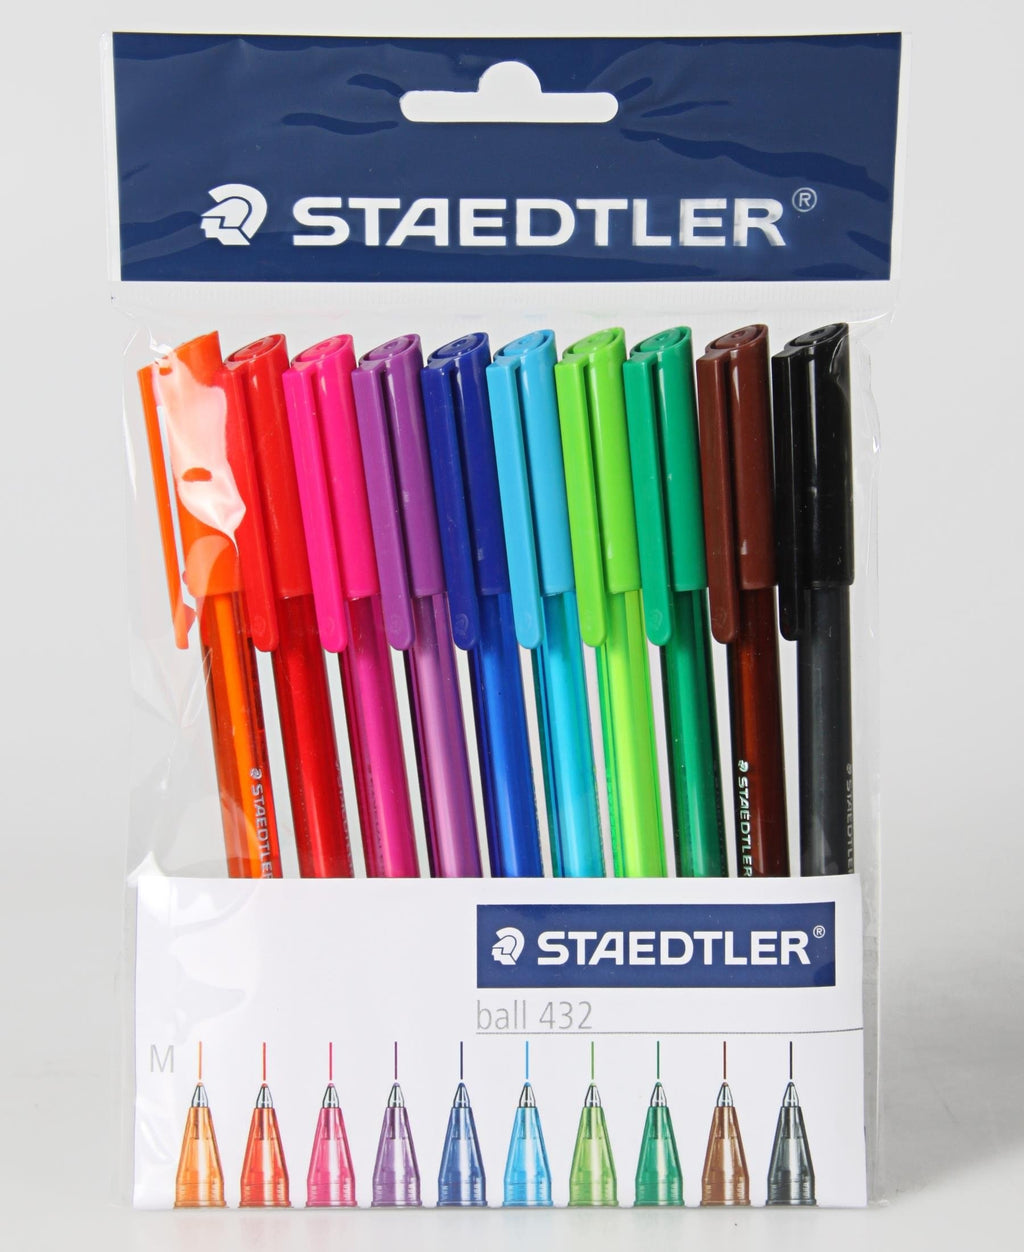 Staedtler 10 Assorted Ball Point Pens - Multi